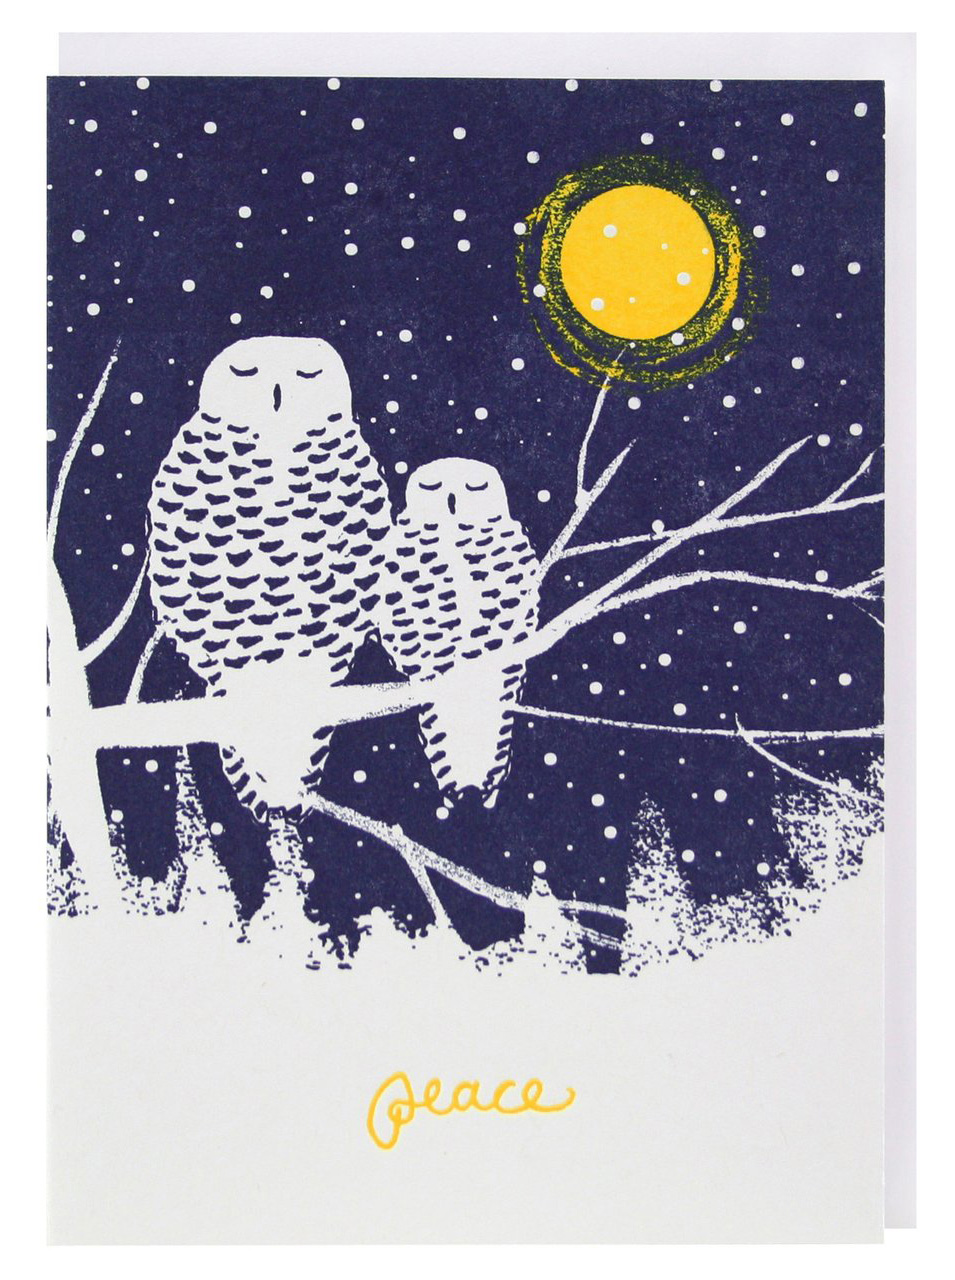 Peaceful-Owls-Holiday-Card_1280x1280.jpg